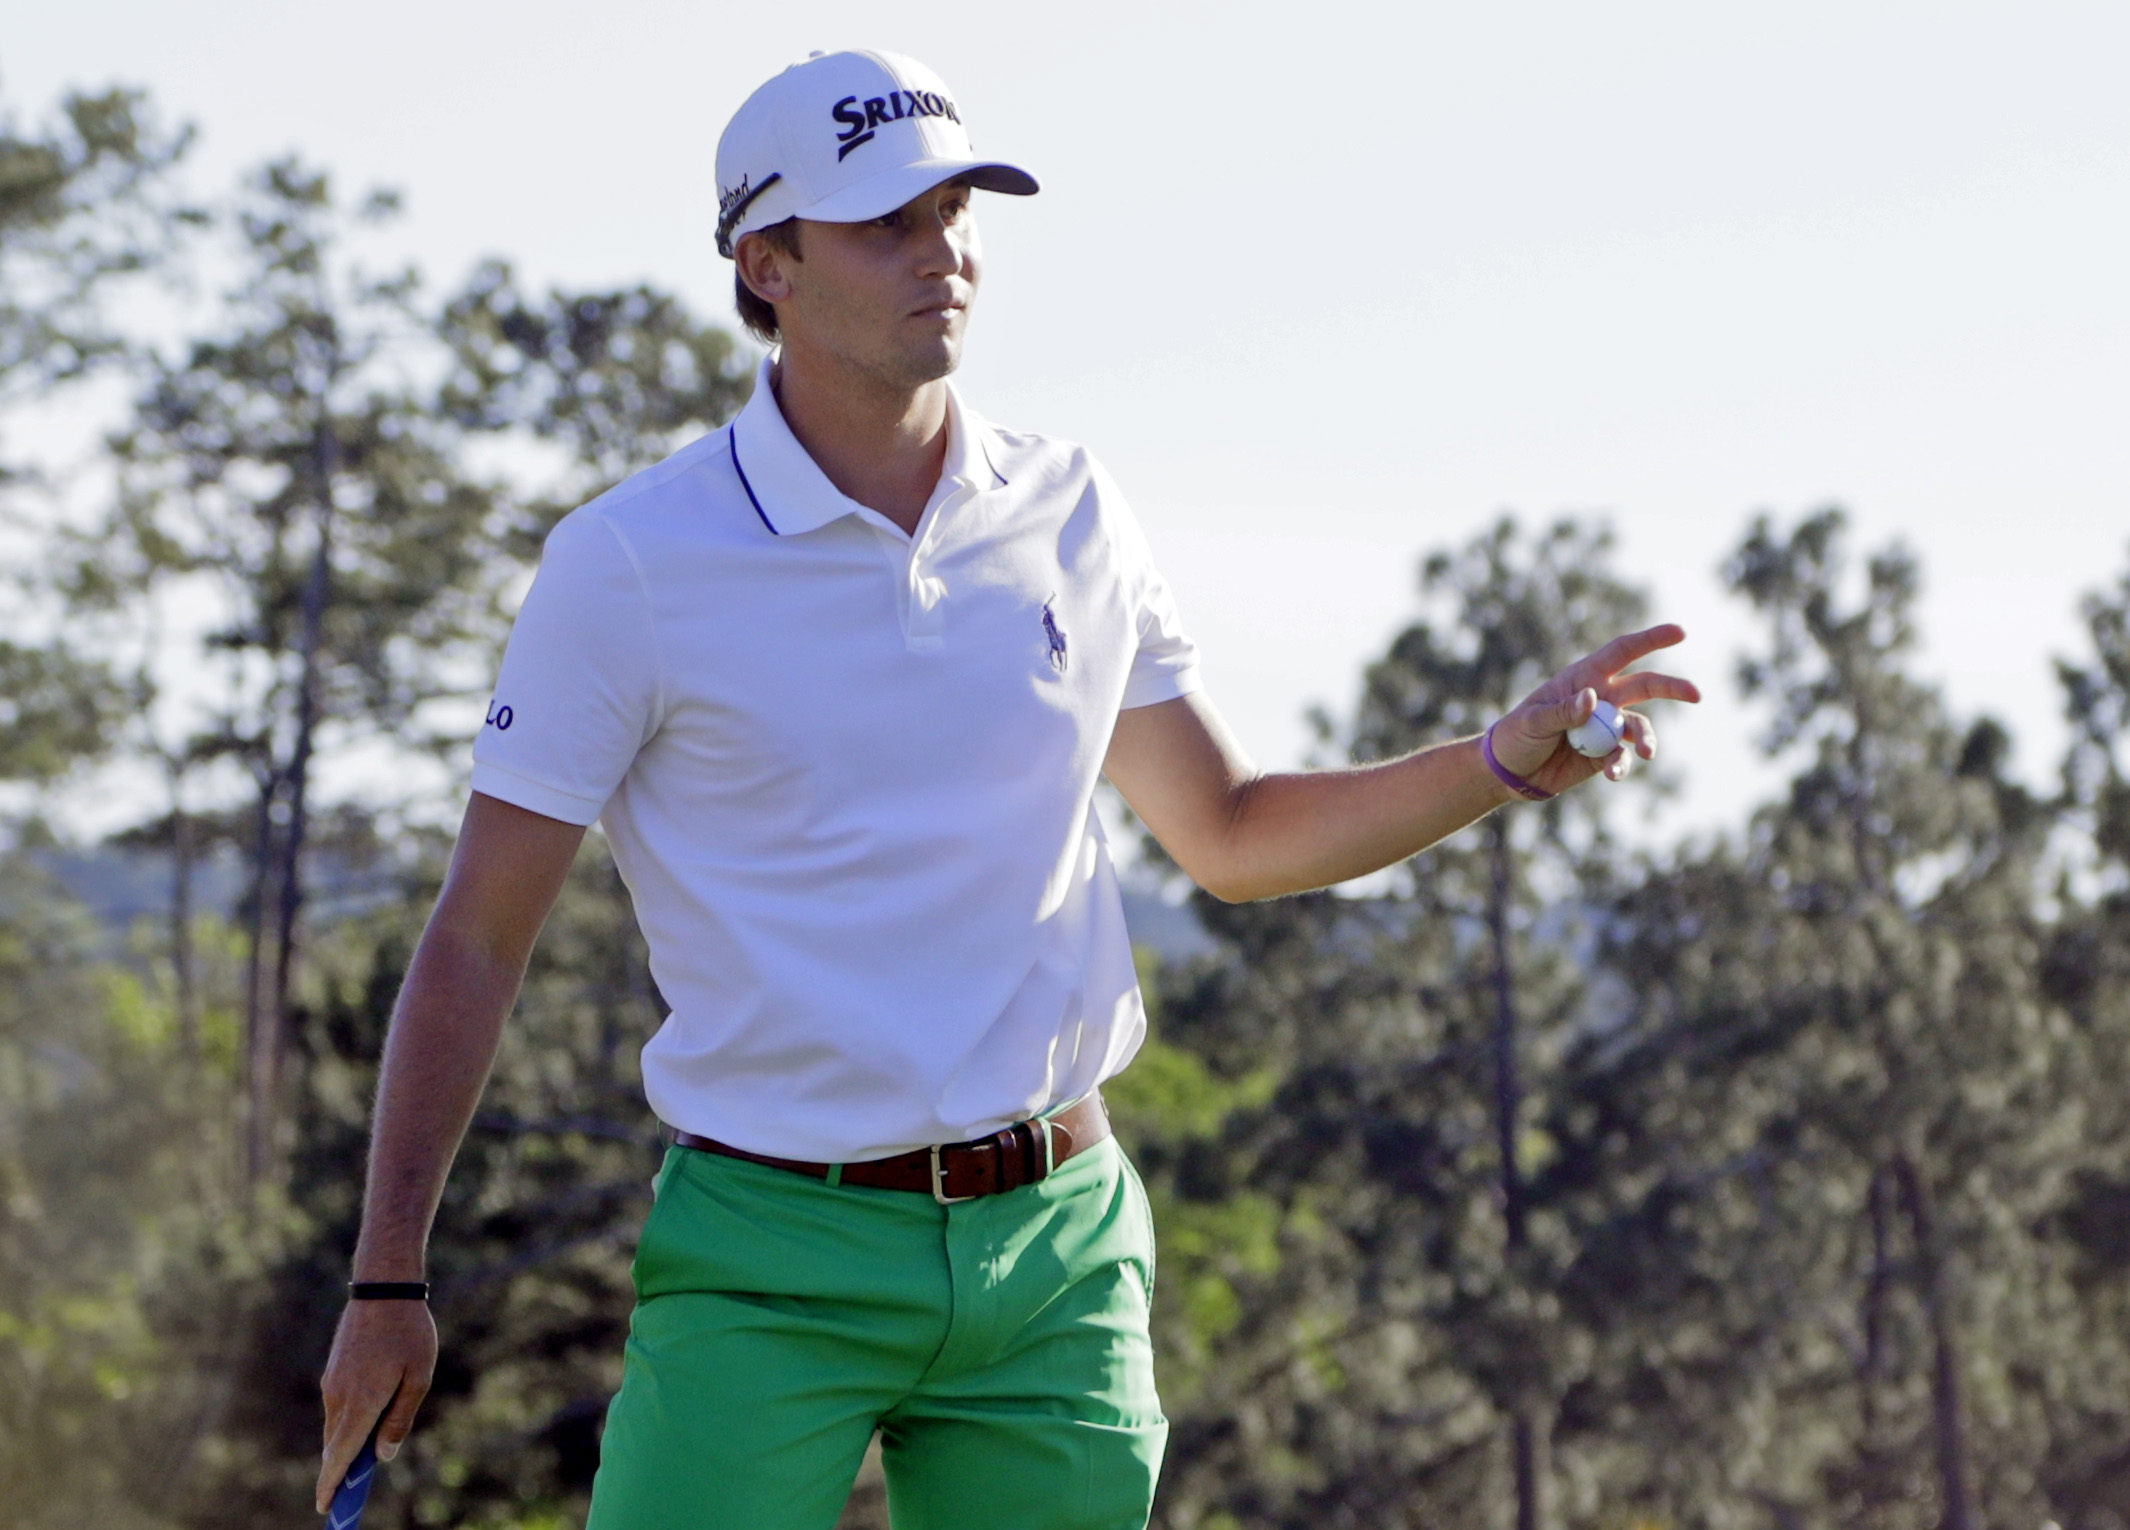 Smylie Kaufman holds up his ball after putting out on the 18th green during the third round of the Masters golf tournament Saturday, April 9, 2016, in Augusta, Ga. (AP Photo/Jae C. Hong)